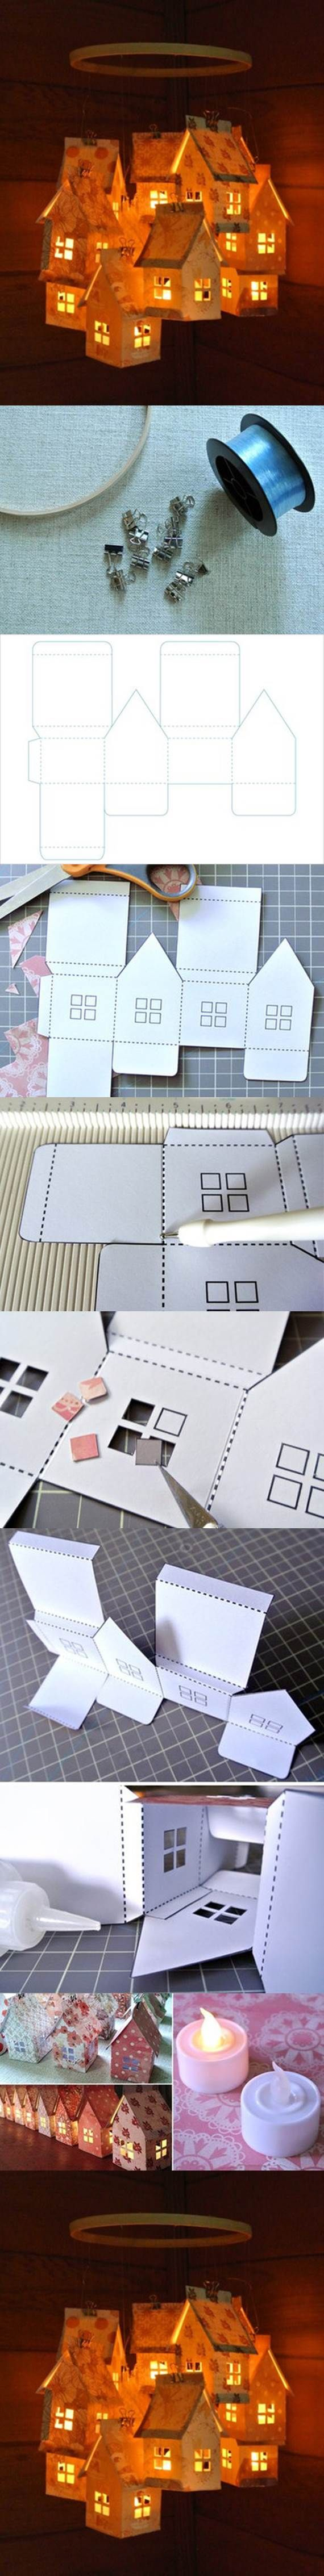 DIY Cardboard Small Village Shaped Lantern 2